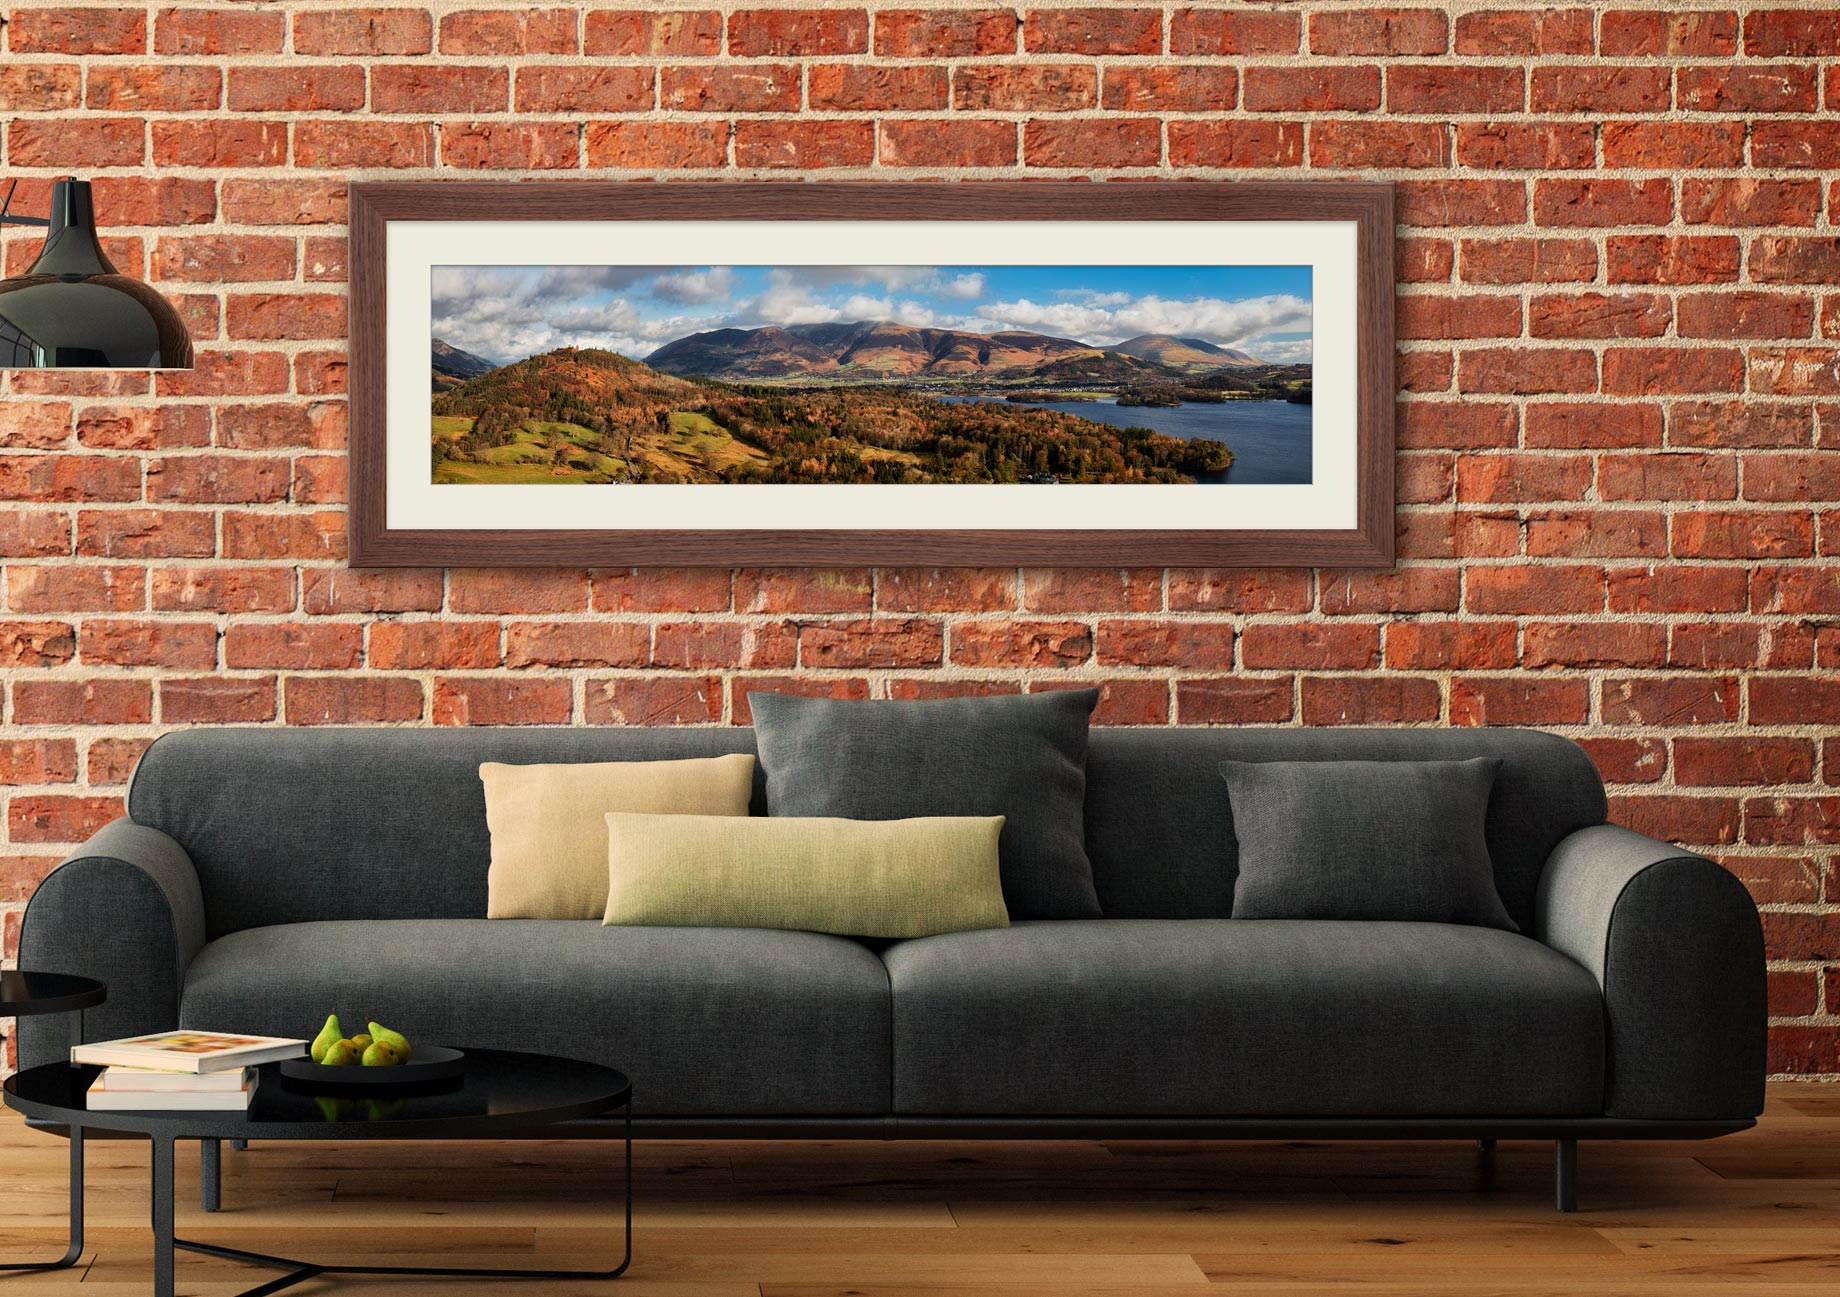 Keswick and Skiddaw Panorama - Framed Print with Mount on Wall